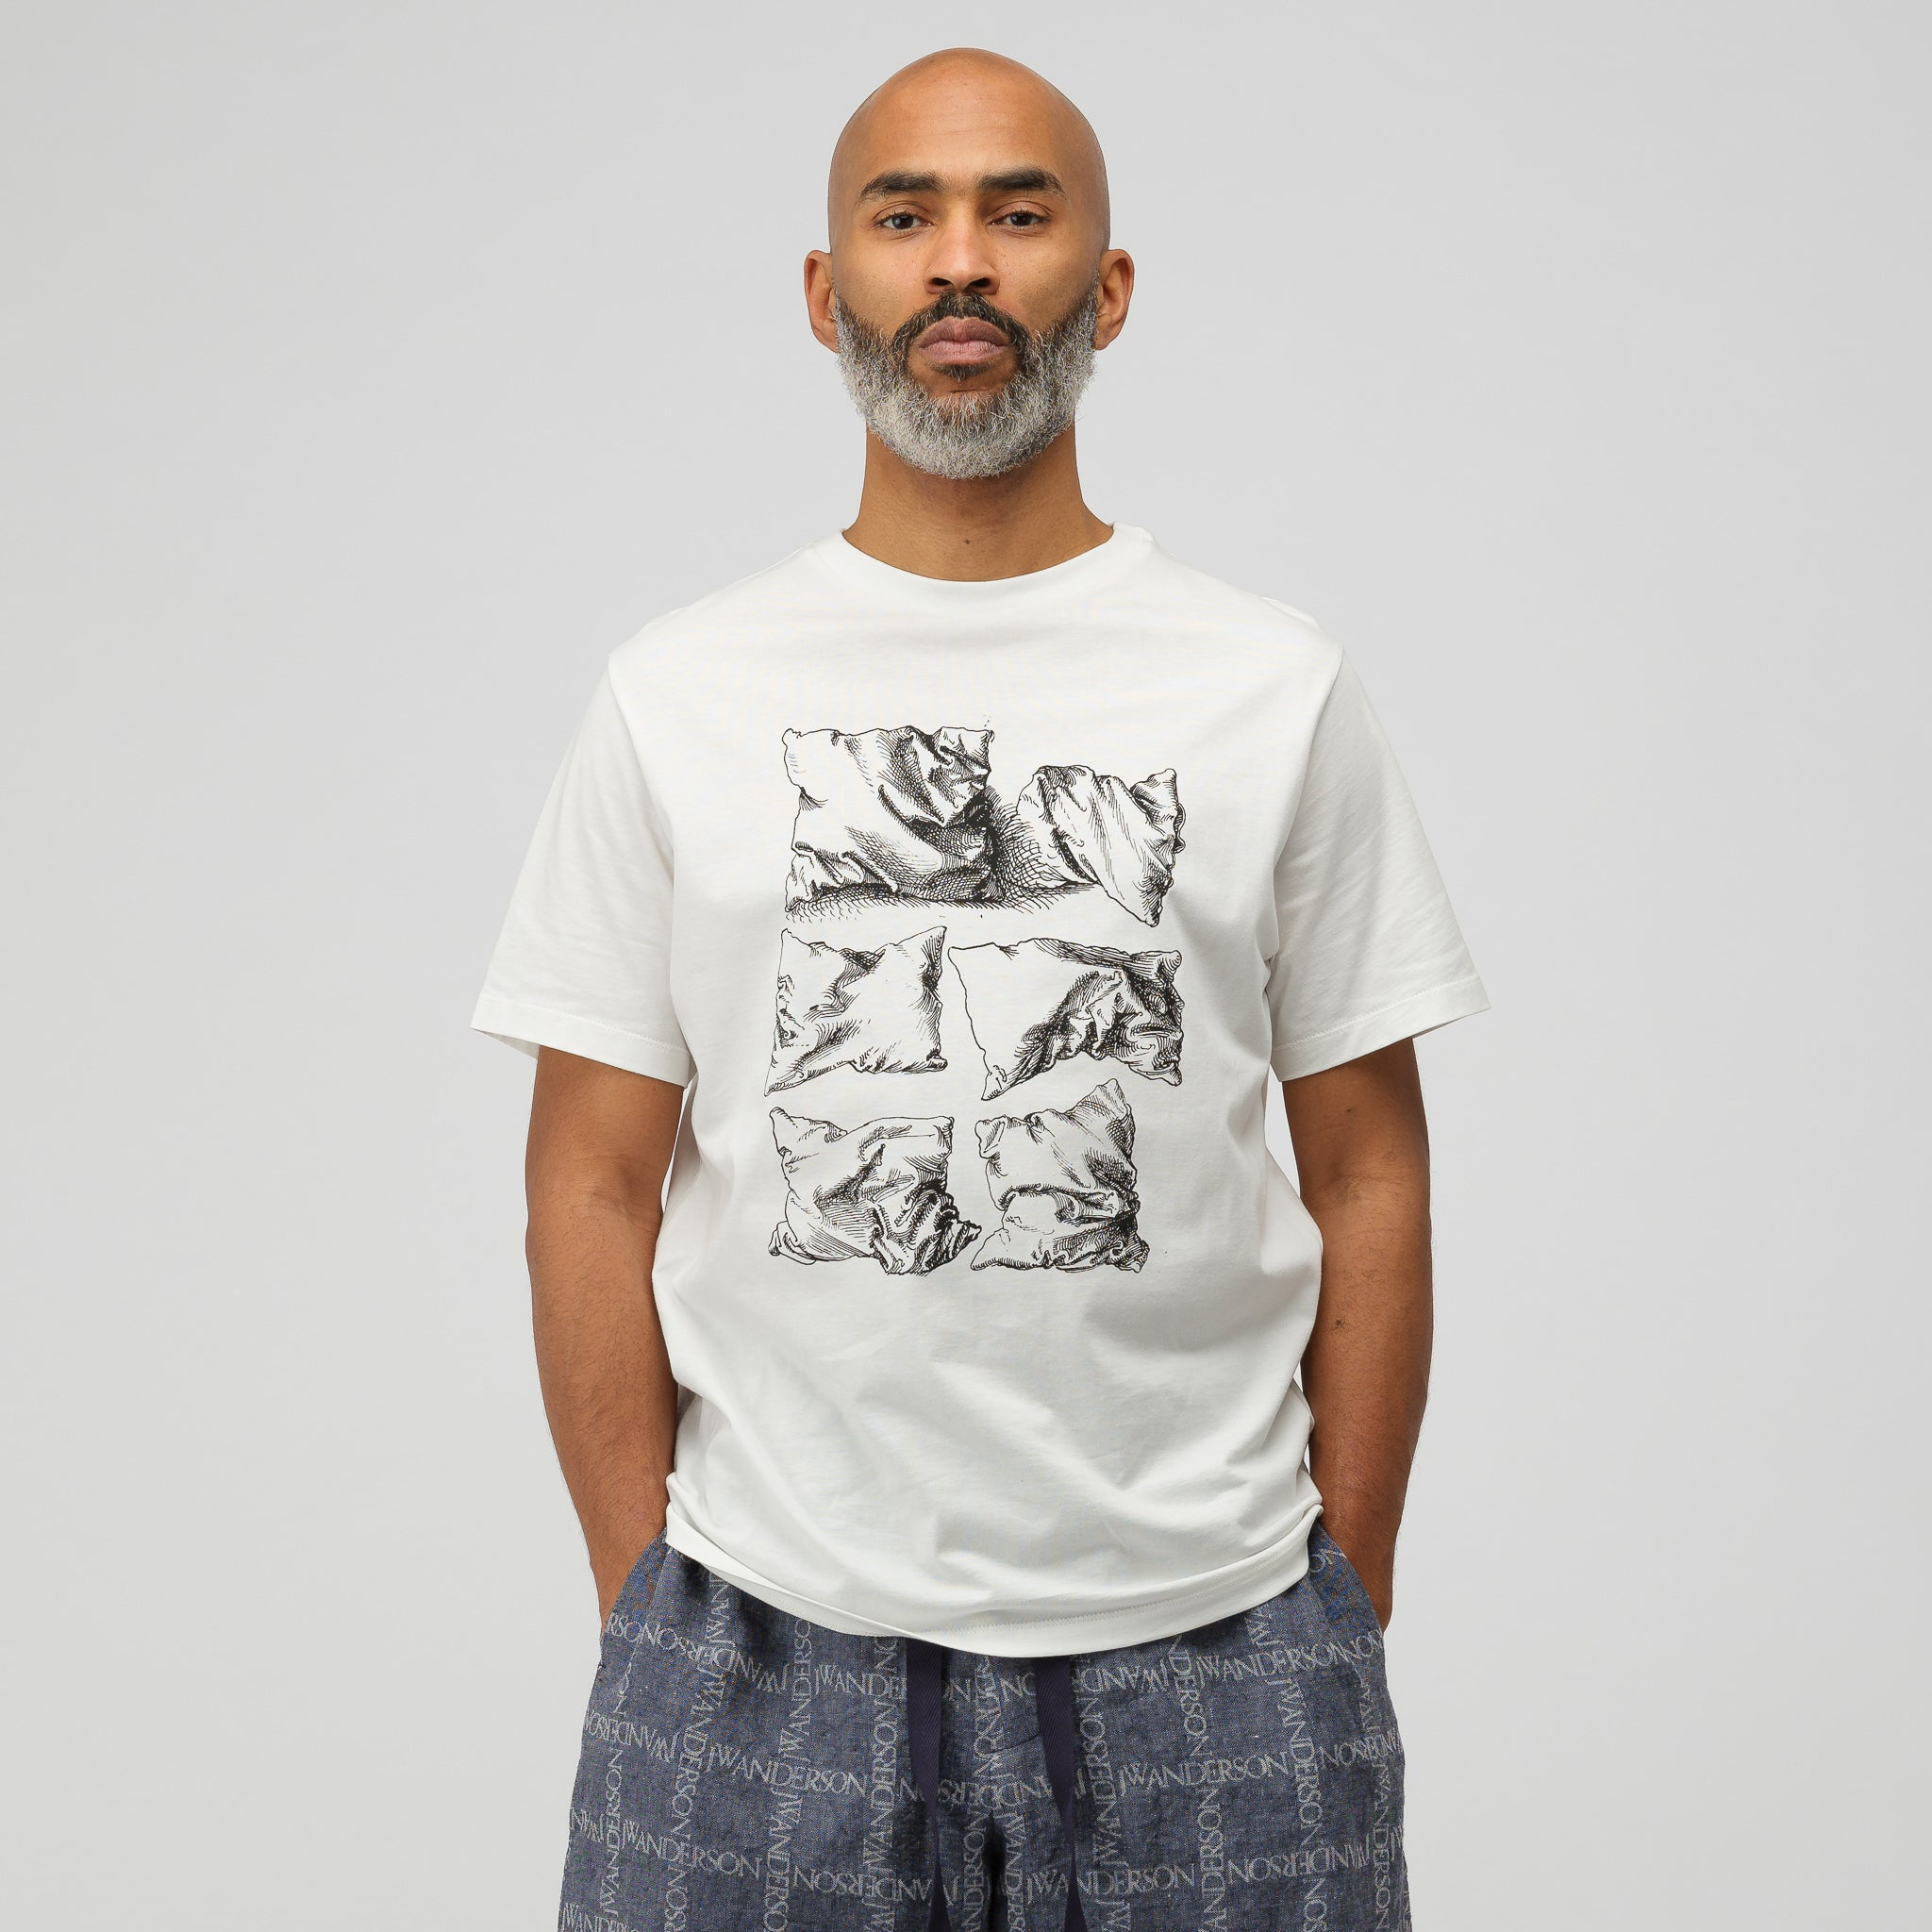 Dürer Pillows Short Sleeve T-Shirt in Off White